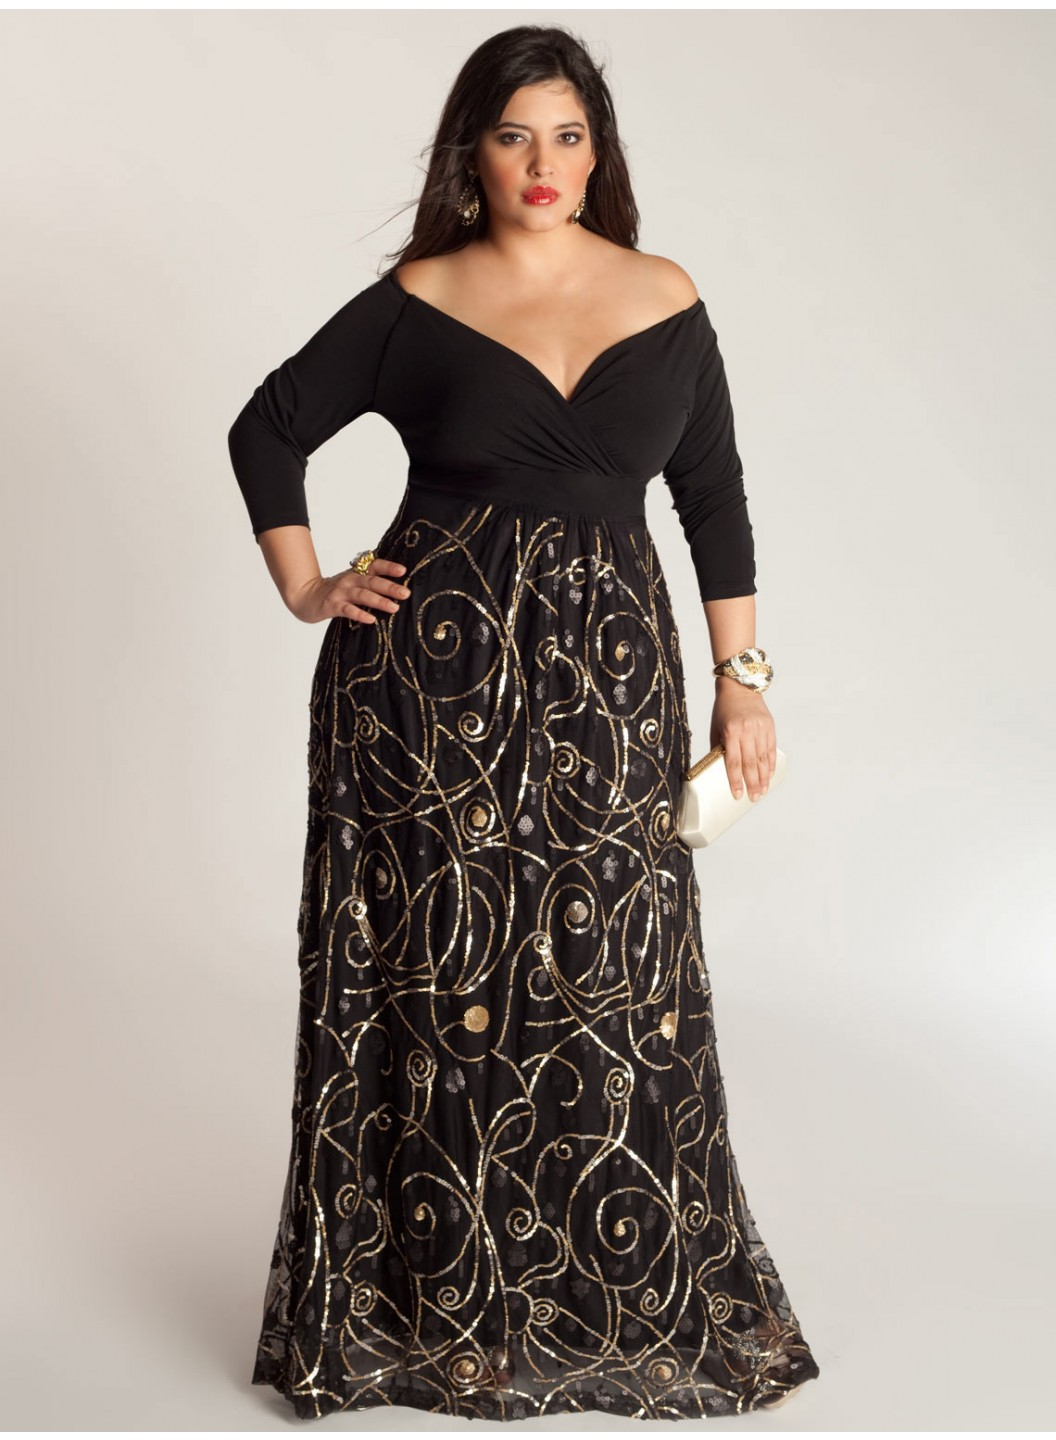 A plus size woman with an apple body shape has a prominent, curvier upper body. Clothes that bring attention to your lower half look amazing on hourglass body types—think full skirts and flared pants. • Pear. A plus size woman with a pear body shape has a narrow upper body and full hips and thighs.